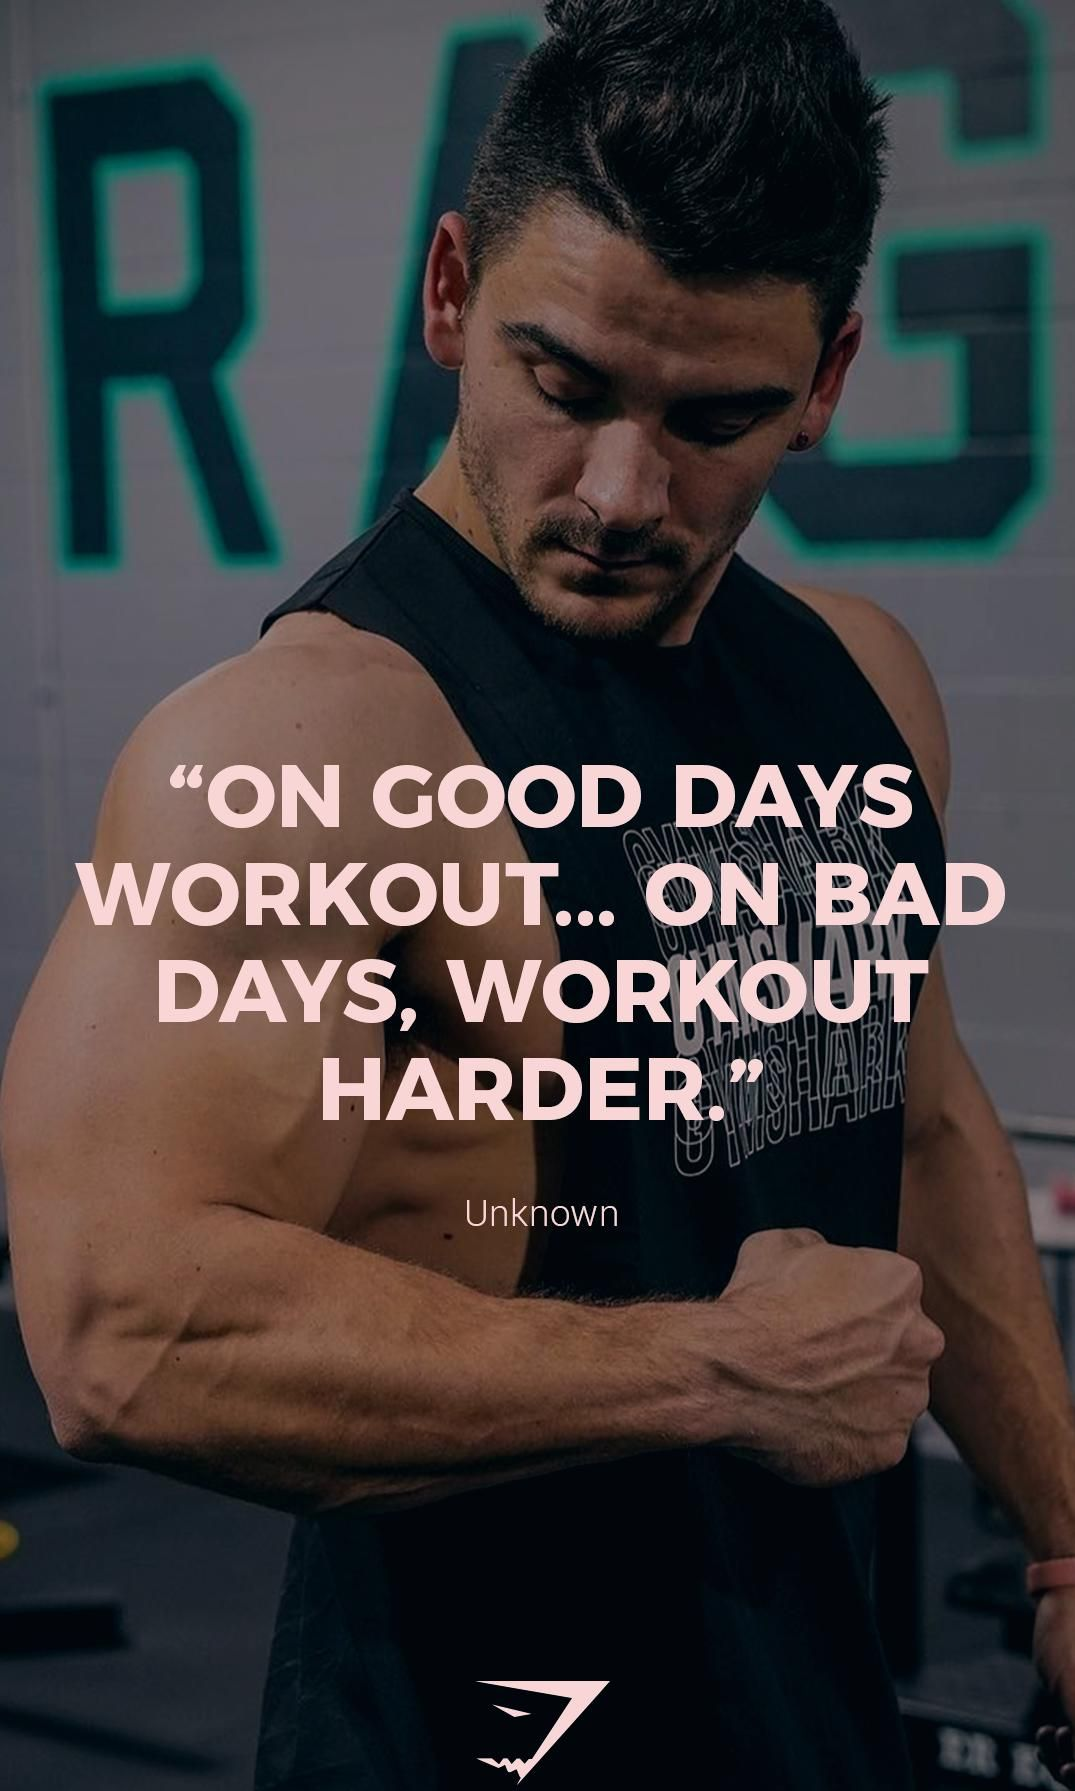 """""""On good days workout... On bad days, workout harder."""" - Unknown. #Gymshark#Quotes#Motivational #I..."""